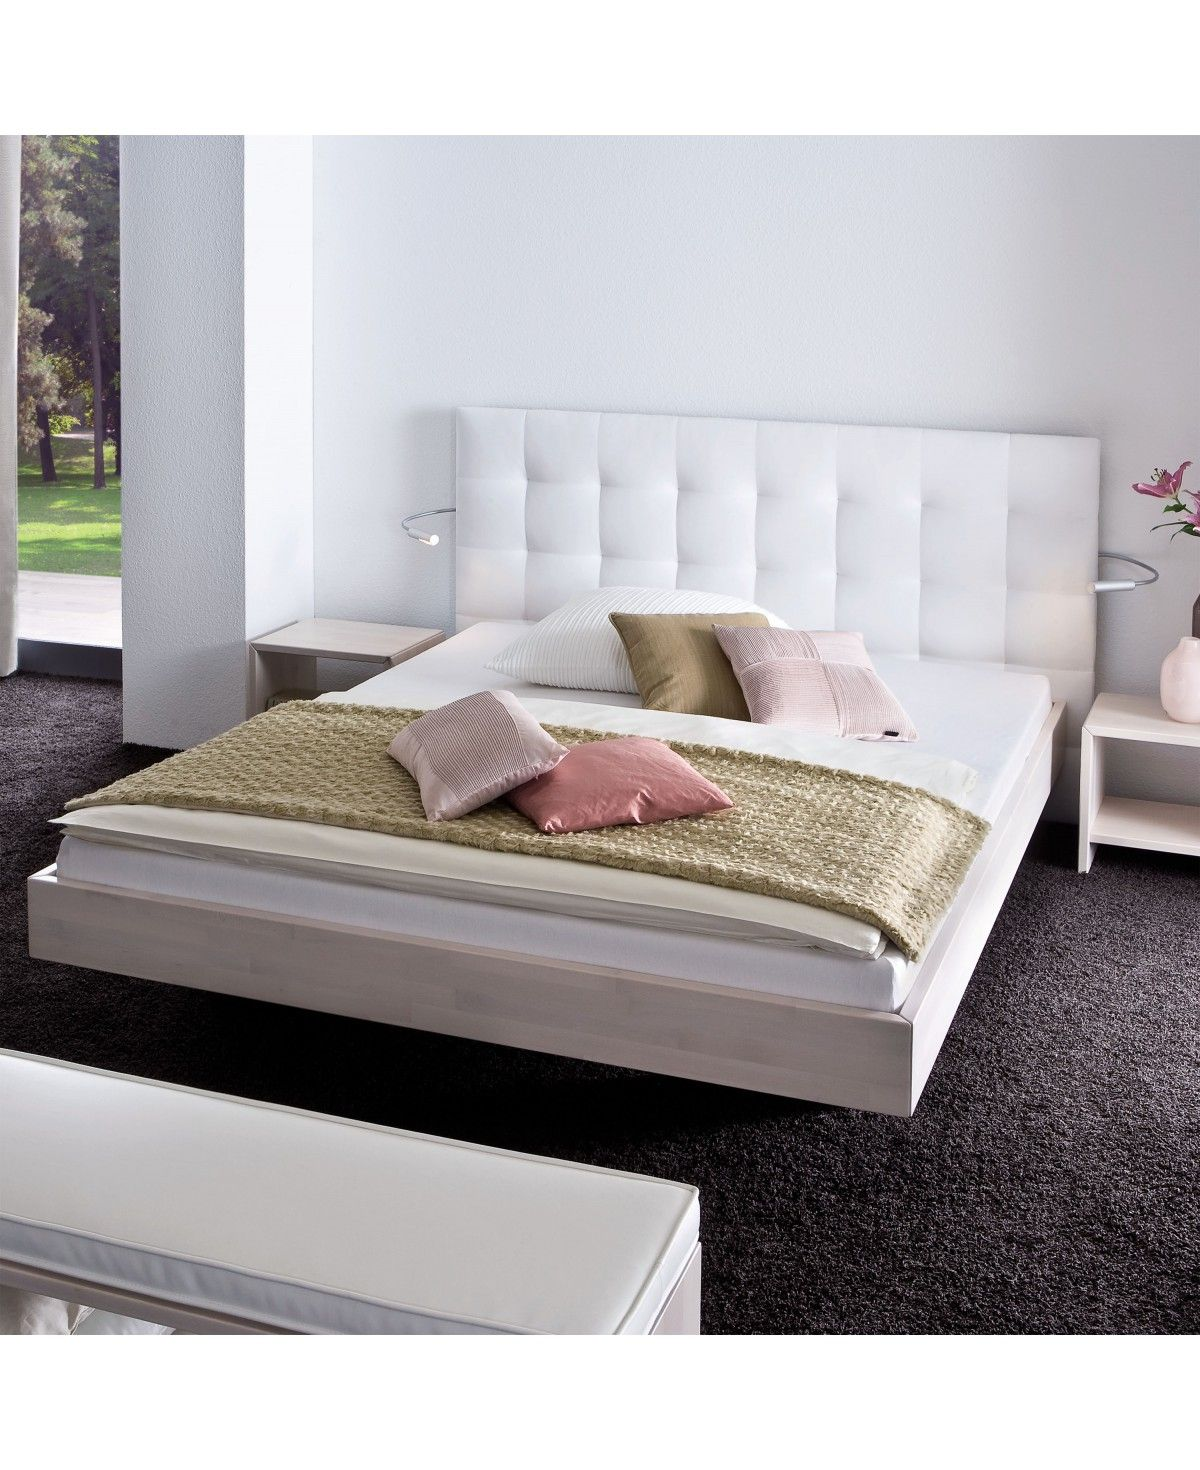 hasena wood line bett wandpaneel sogno l f e vilo buche wei 180x220. Black Bedroom Furniture Sets. Home Design Ideas